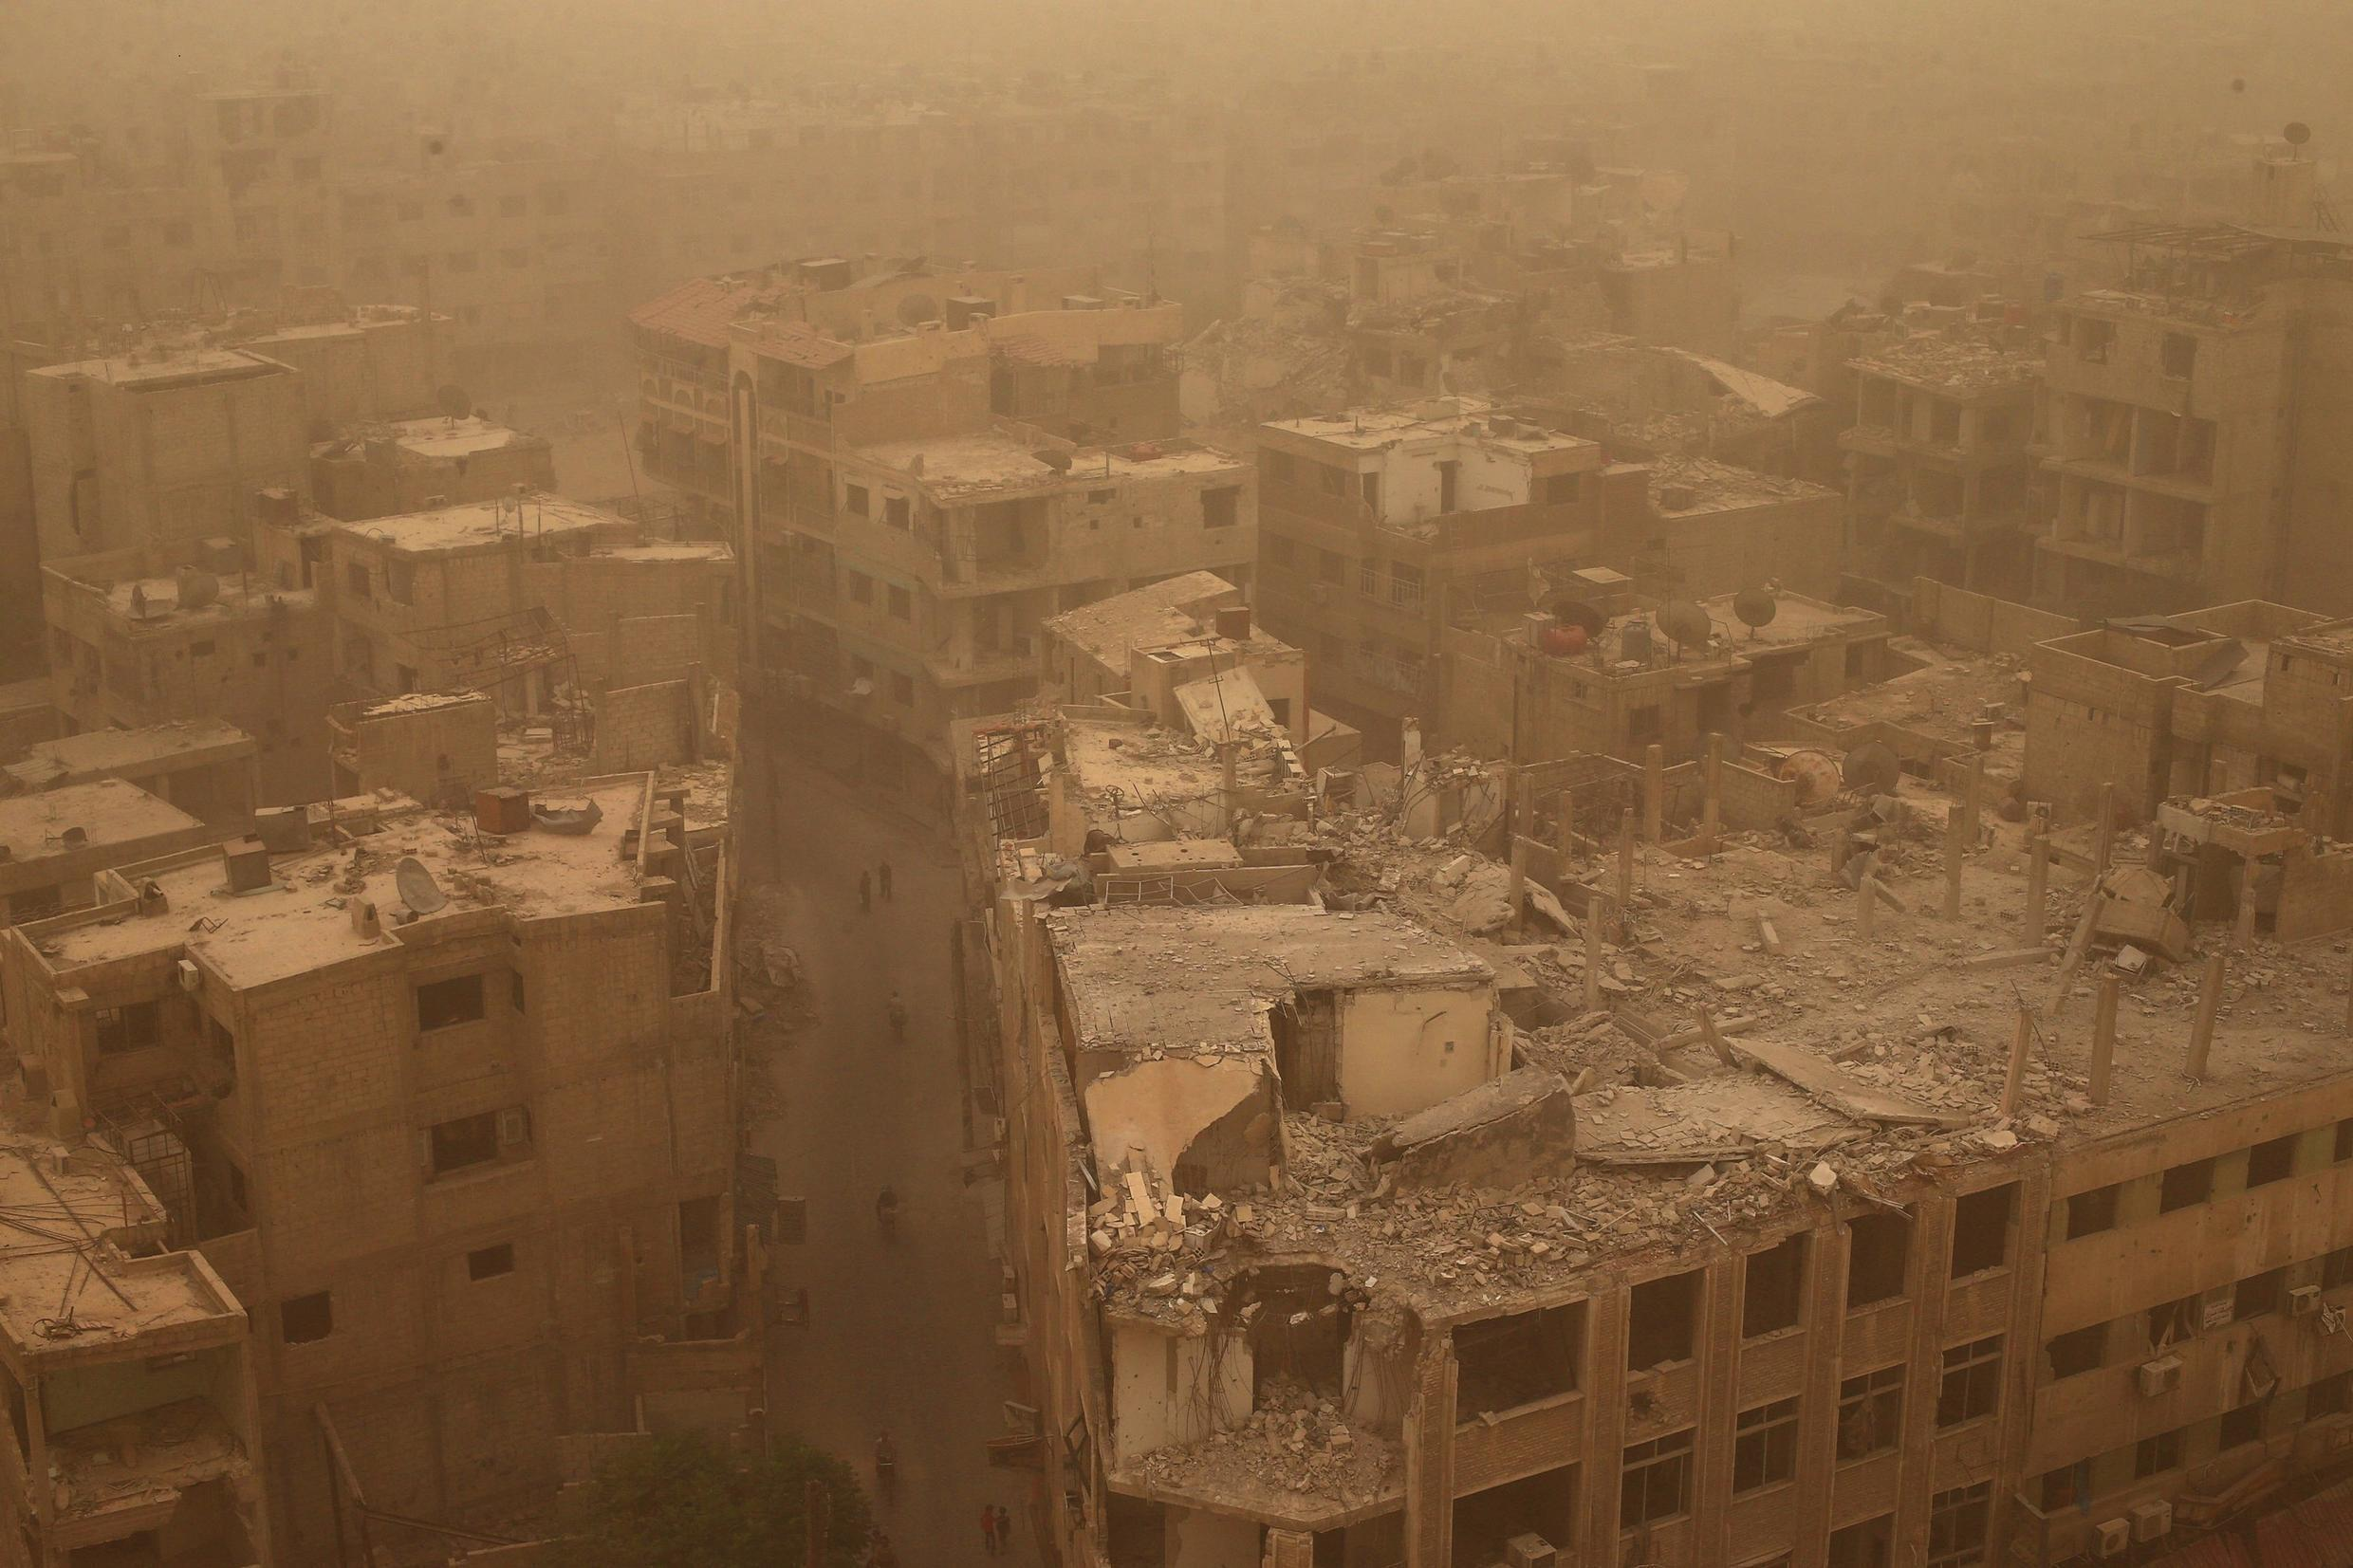 Damaged buildings are pictured during a sandstorm in the Douma neighbourhood of Damascus, Syria, 7 September 2015.